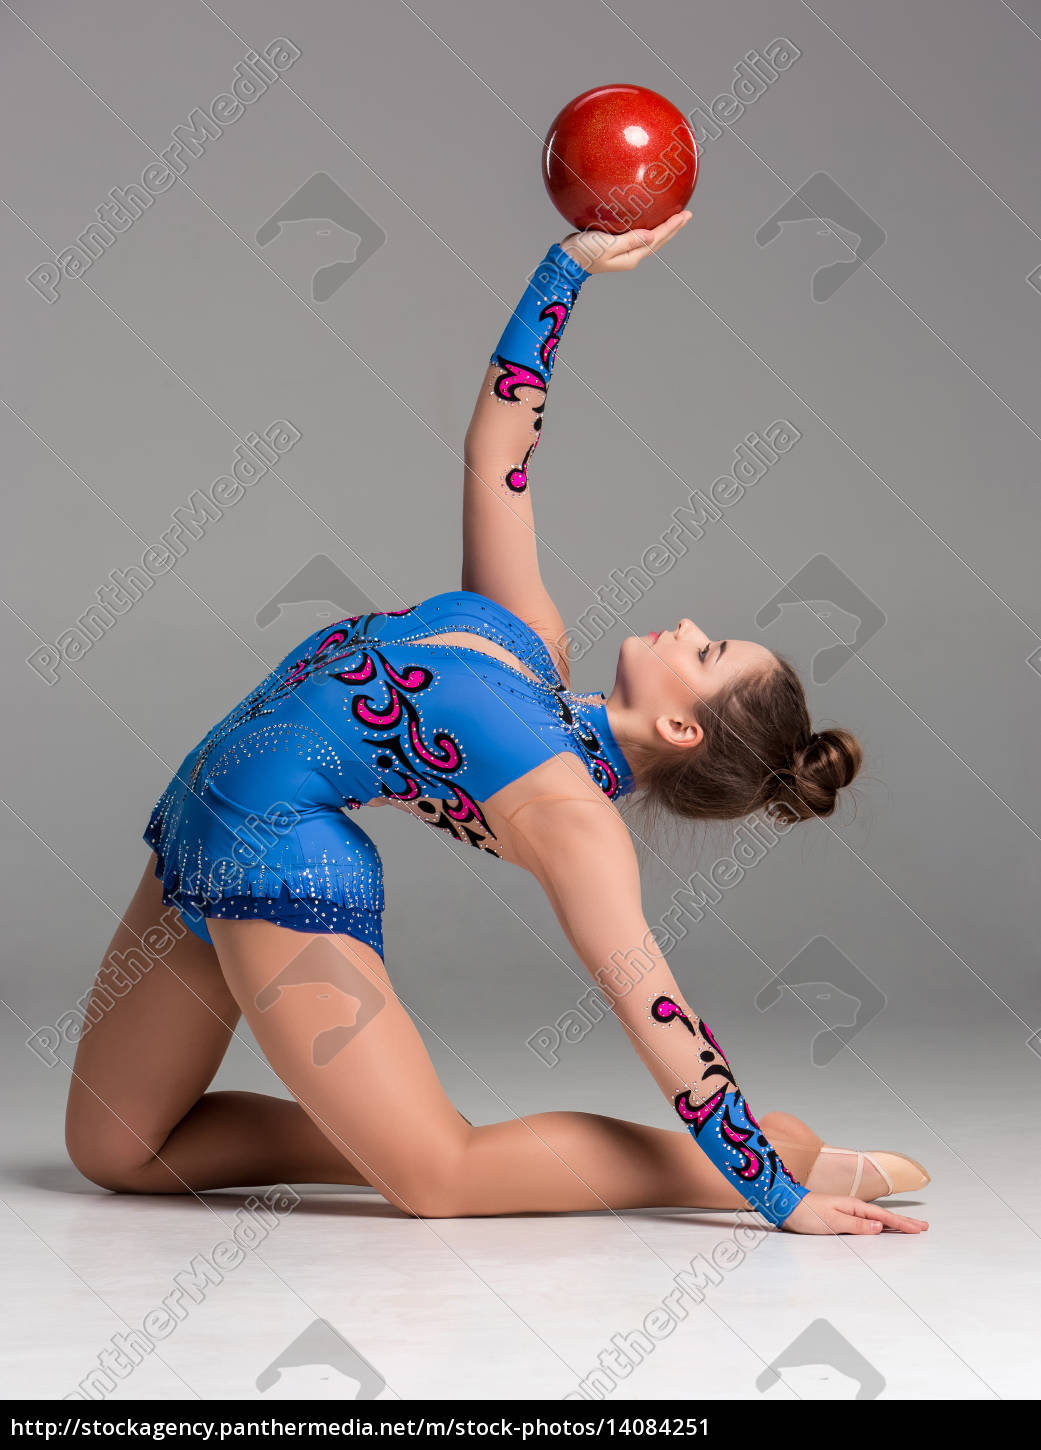 teenager, doing, gymnastics, exercises, with, red - 14084251